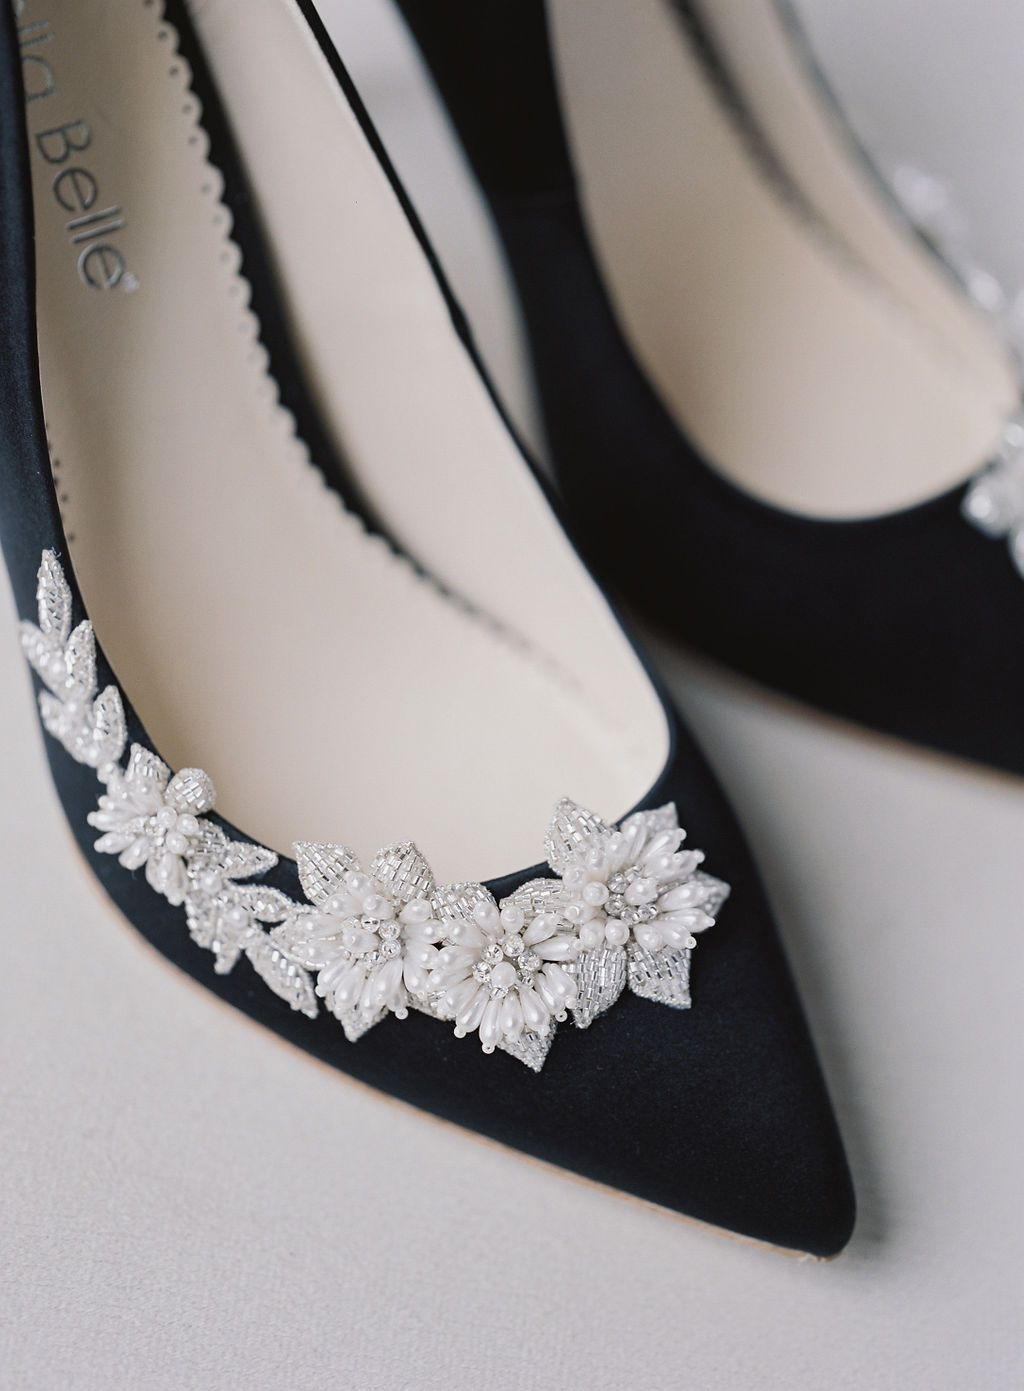 Pin on Evening Shoes